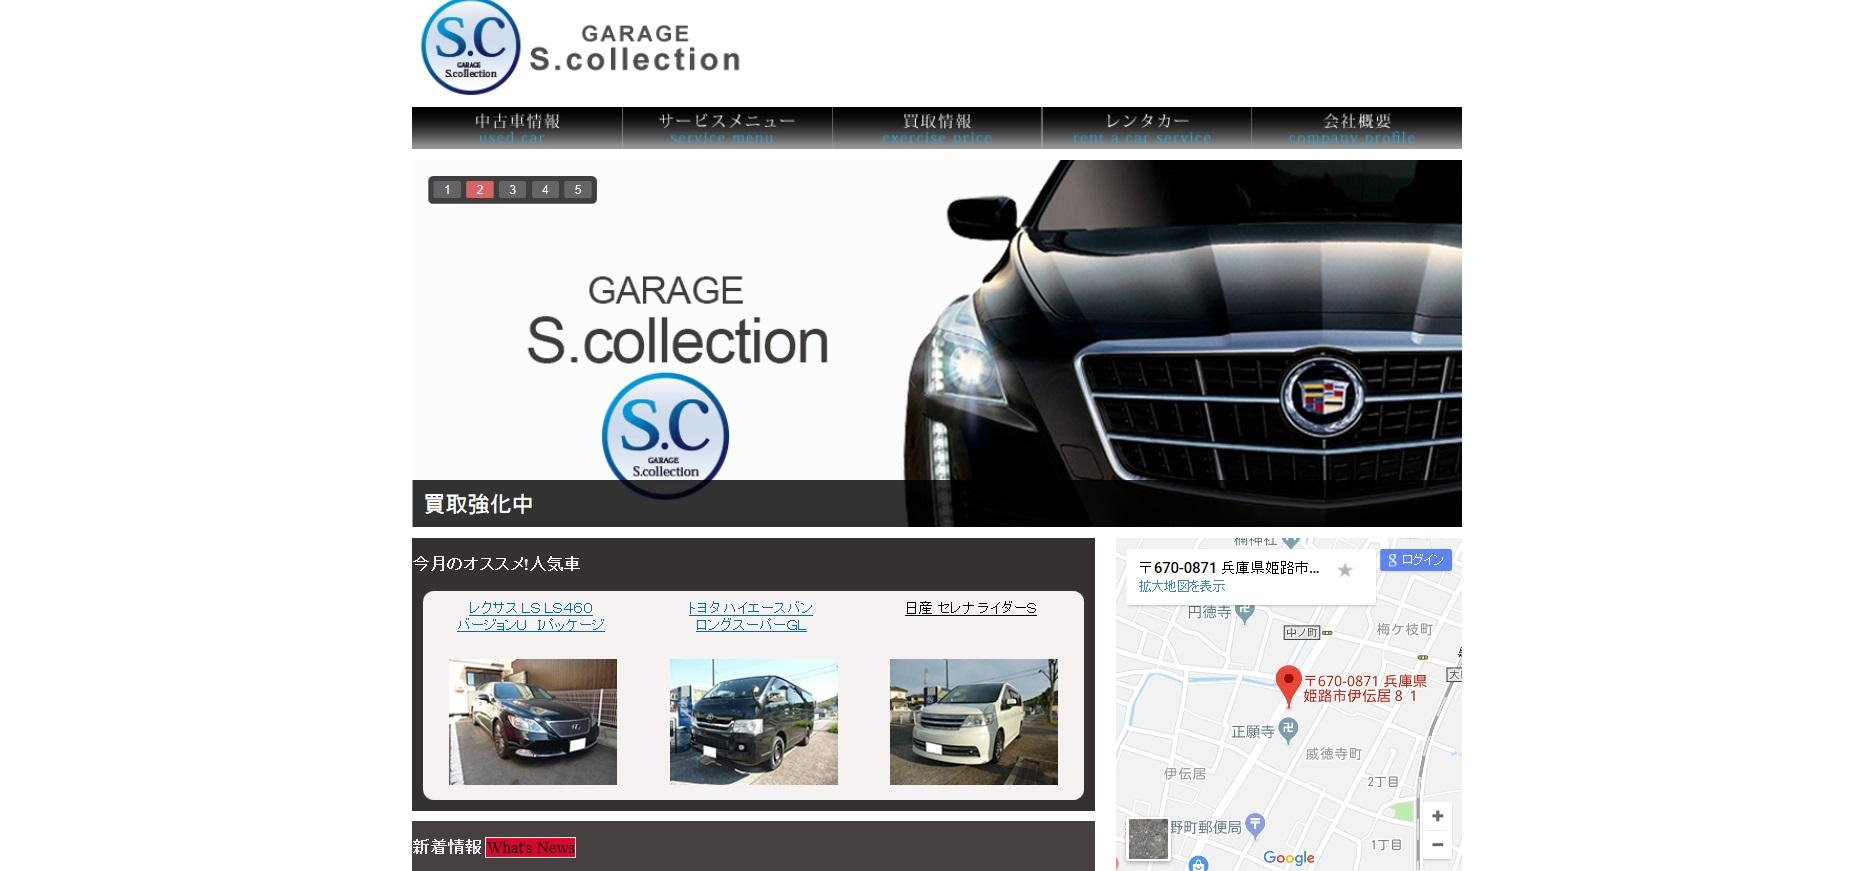 S.Collection